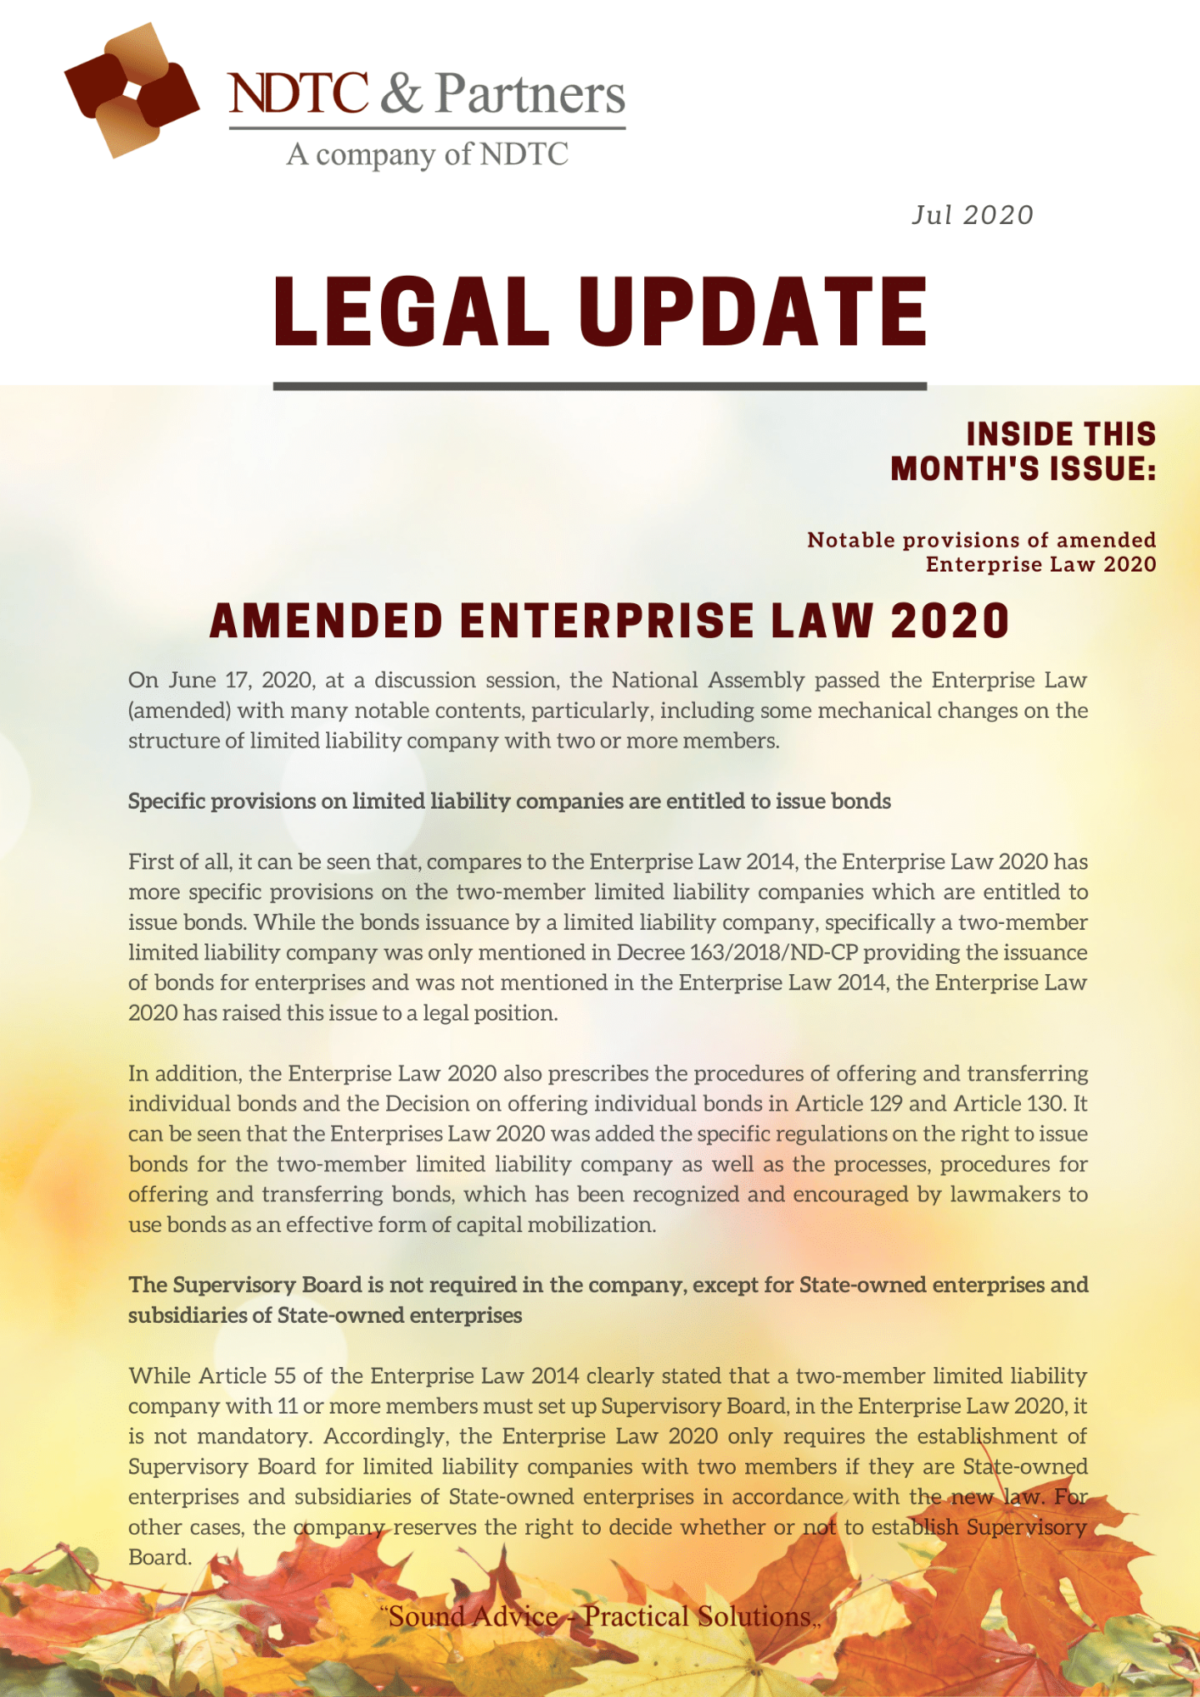 Legal Update July 2020